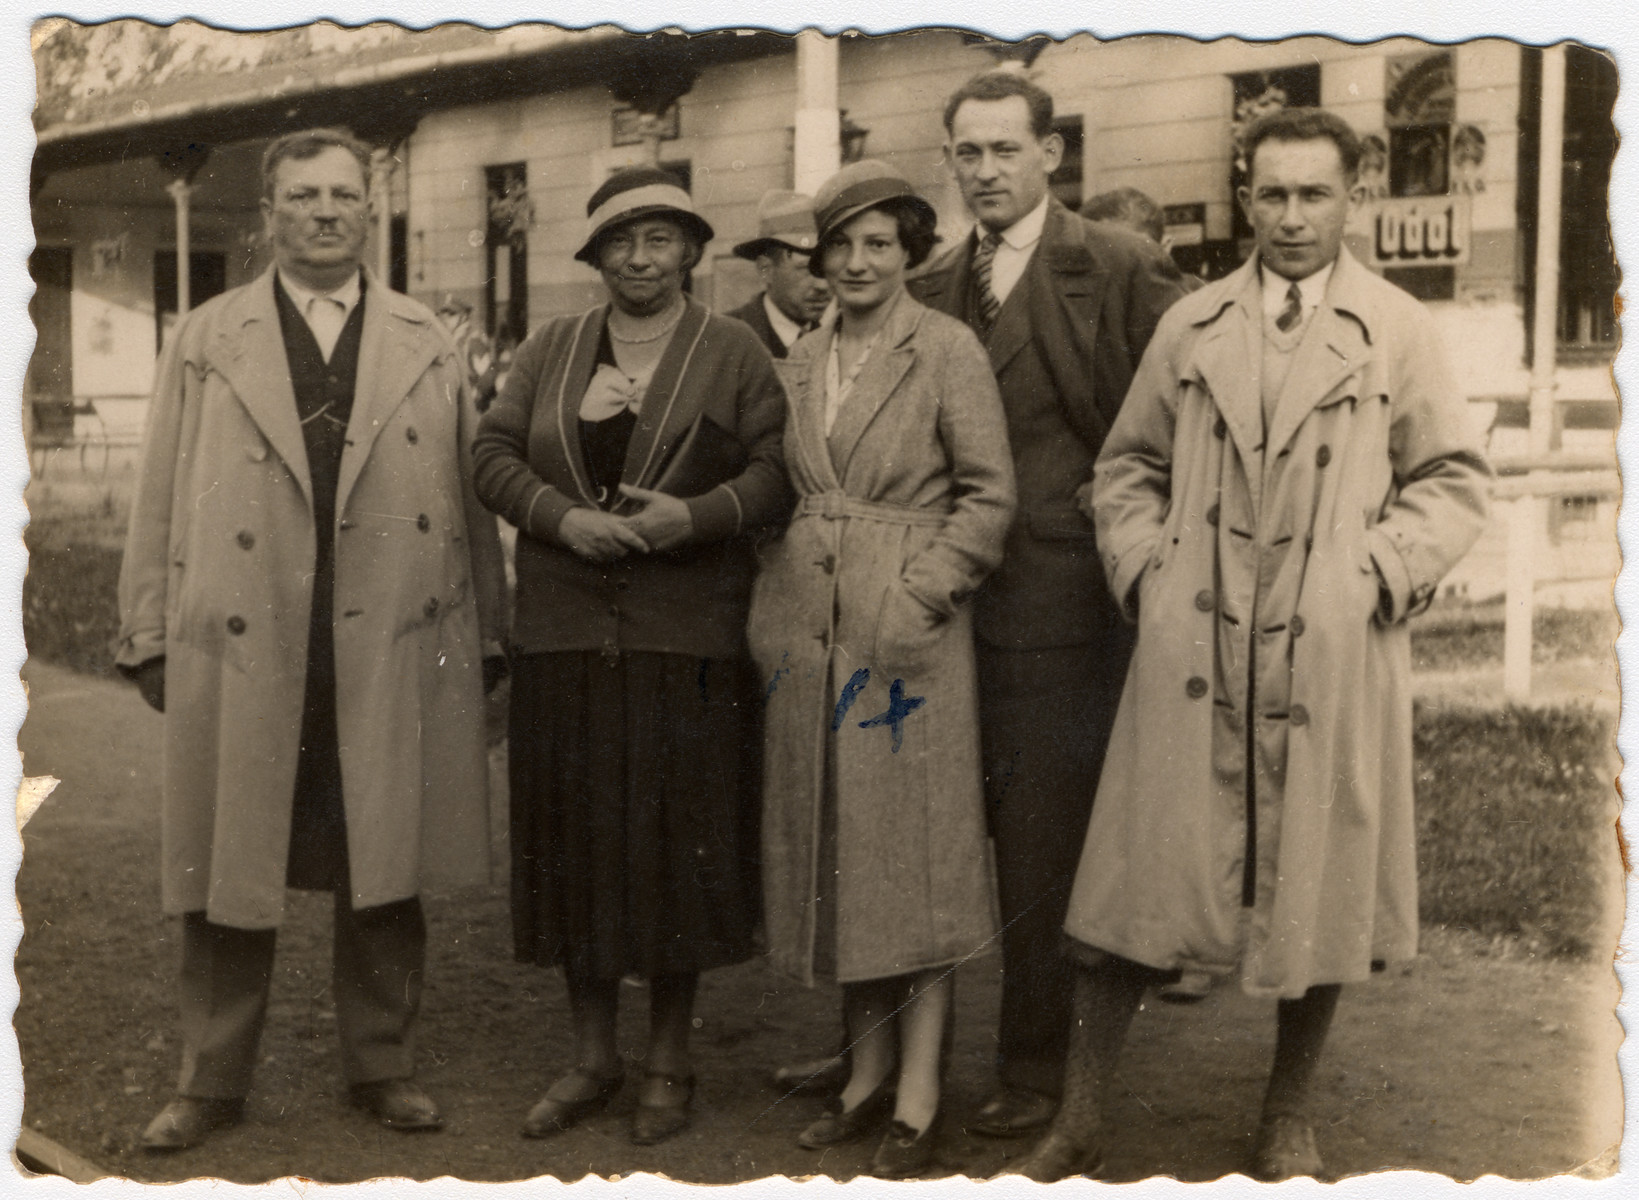 Family portrait of Stefan and Regina Schreiber (left), Isaac and Olga Litman (center), and Luciek in prewar Poland.